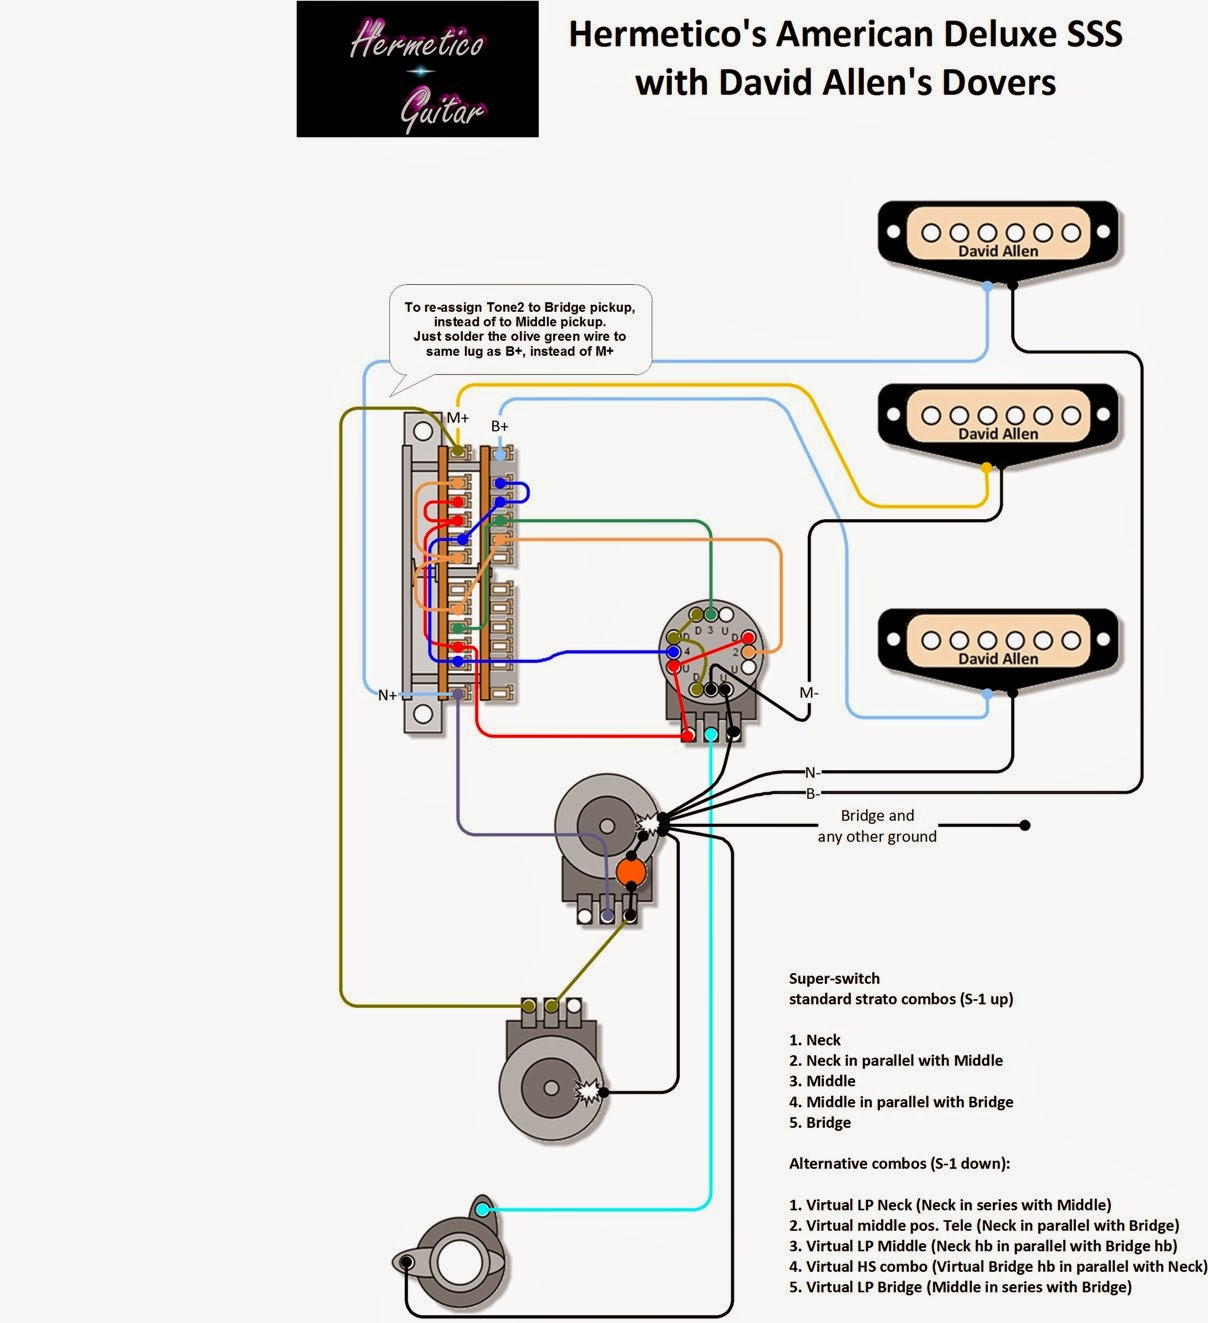 Charming Stratocaster Wiring Mods Thin 2 Humbuckers In Series Flat How To Wire A Solar System Solar Electricity Diagram Old Wiring A Breaker Box Diagram BrownHow To Add A Circuit Breaker To An Electrical Panel Hermetico Guitar: Fender American Deluxe SSS (2010 Model)   A ..